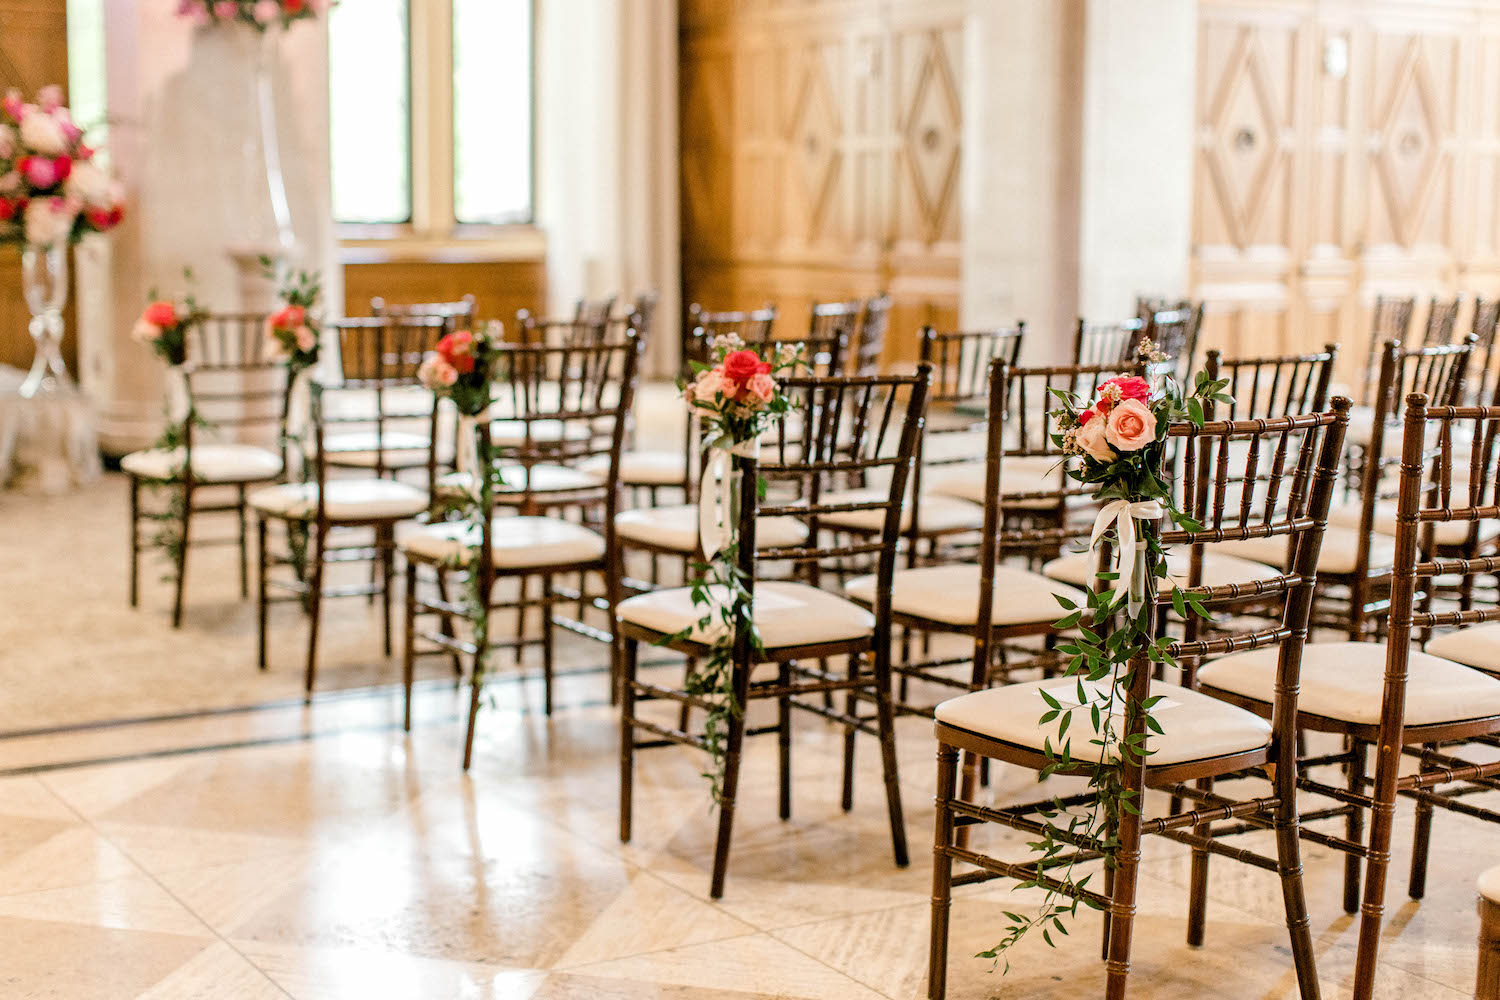 Floral design on aisle chairs